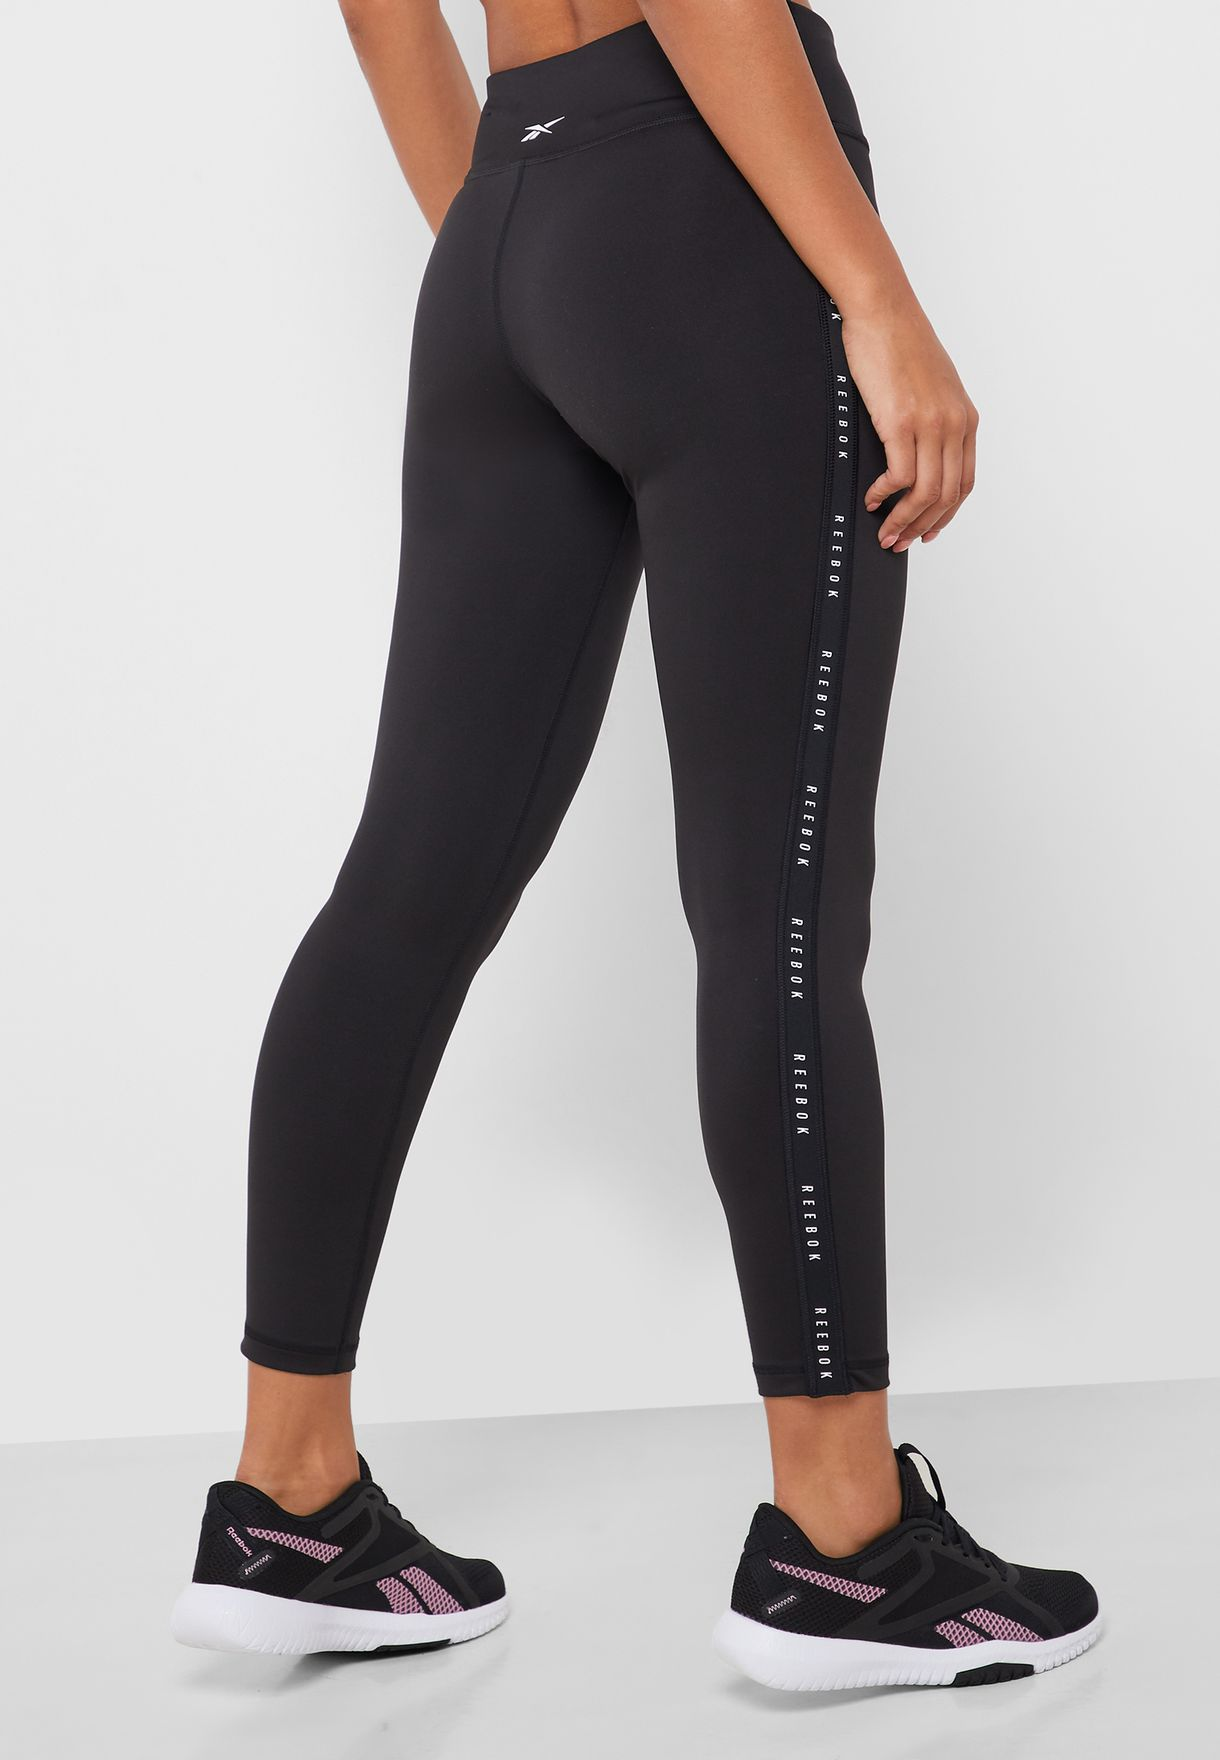 Lux Read 2.0 Tights